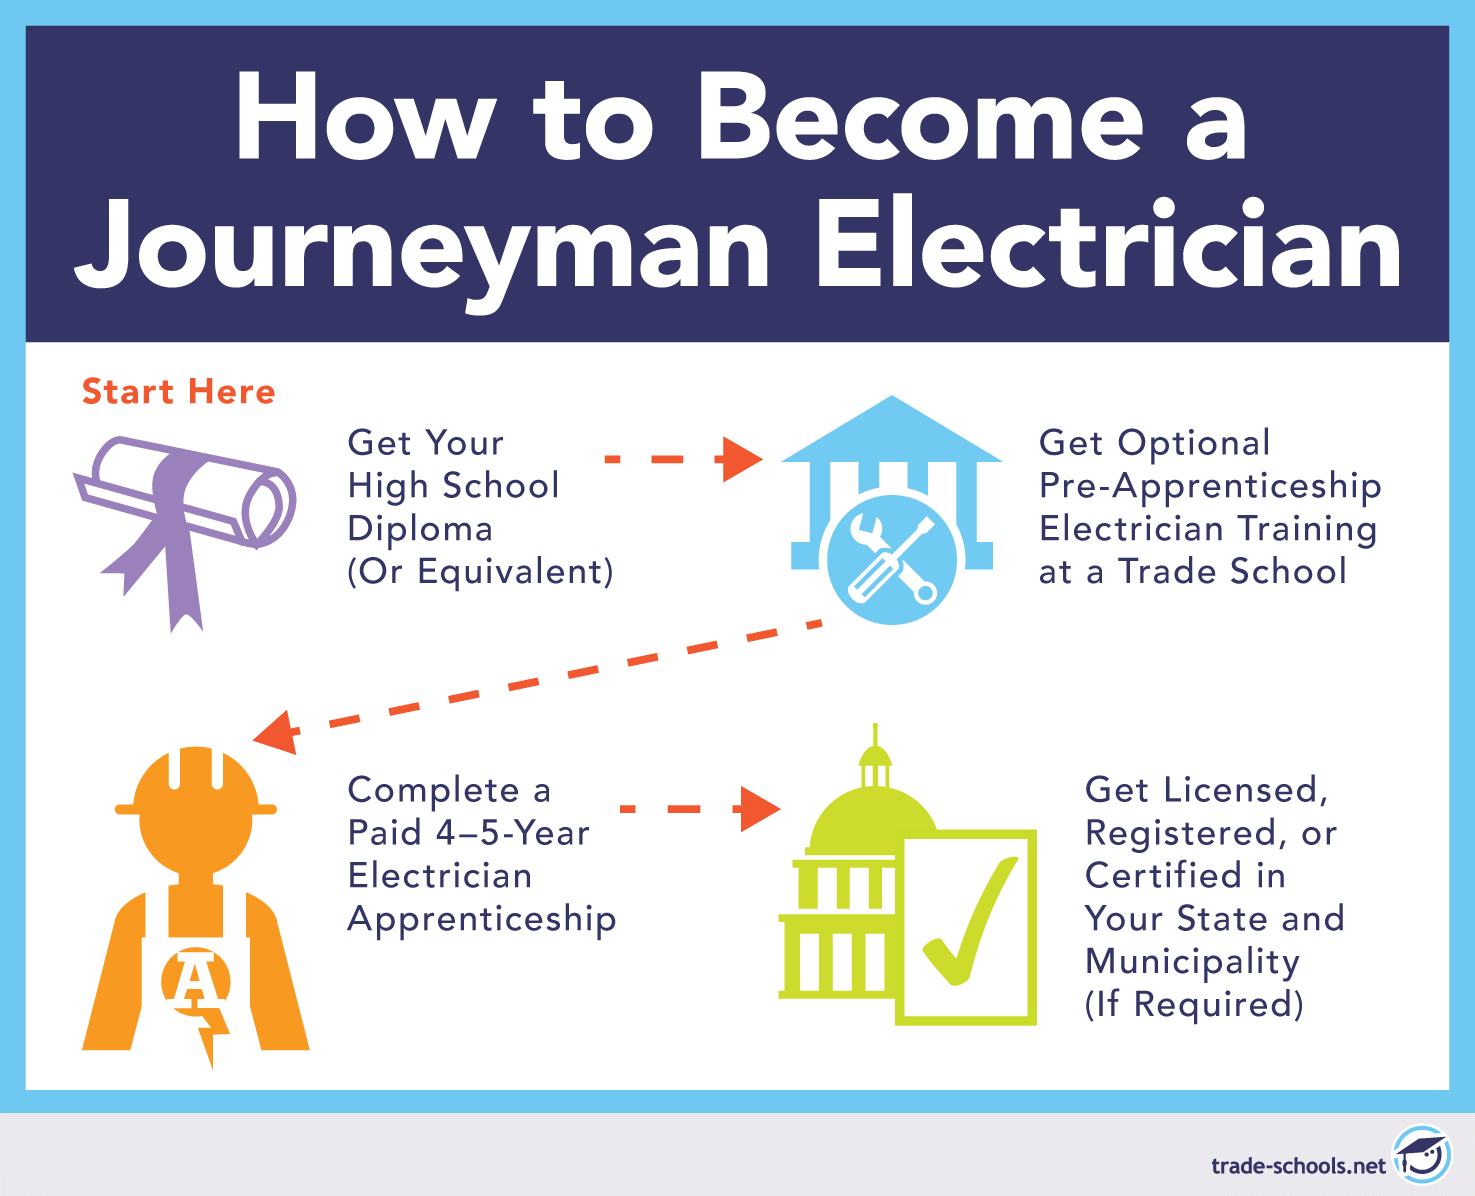 Want a Reliable Job? Consider an Electrician